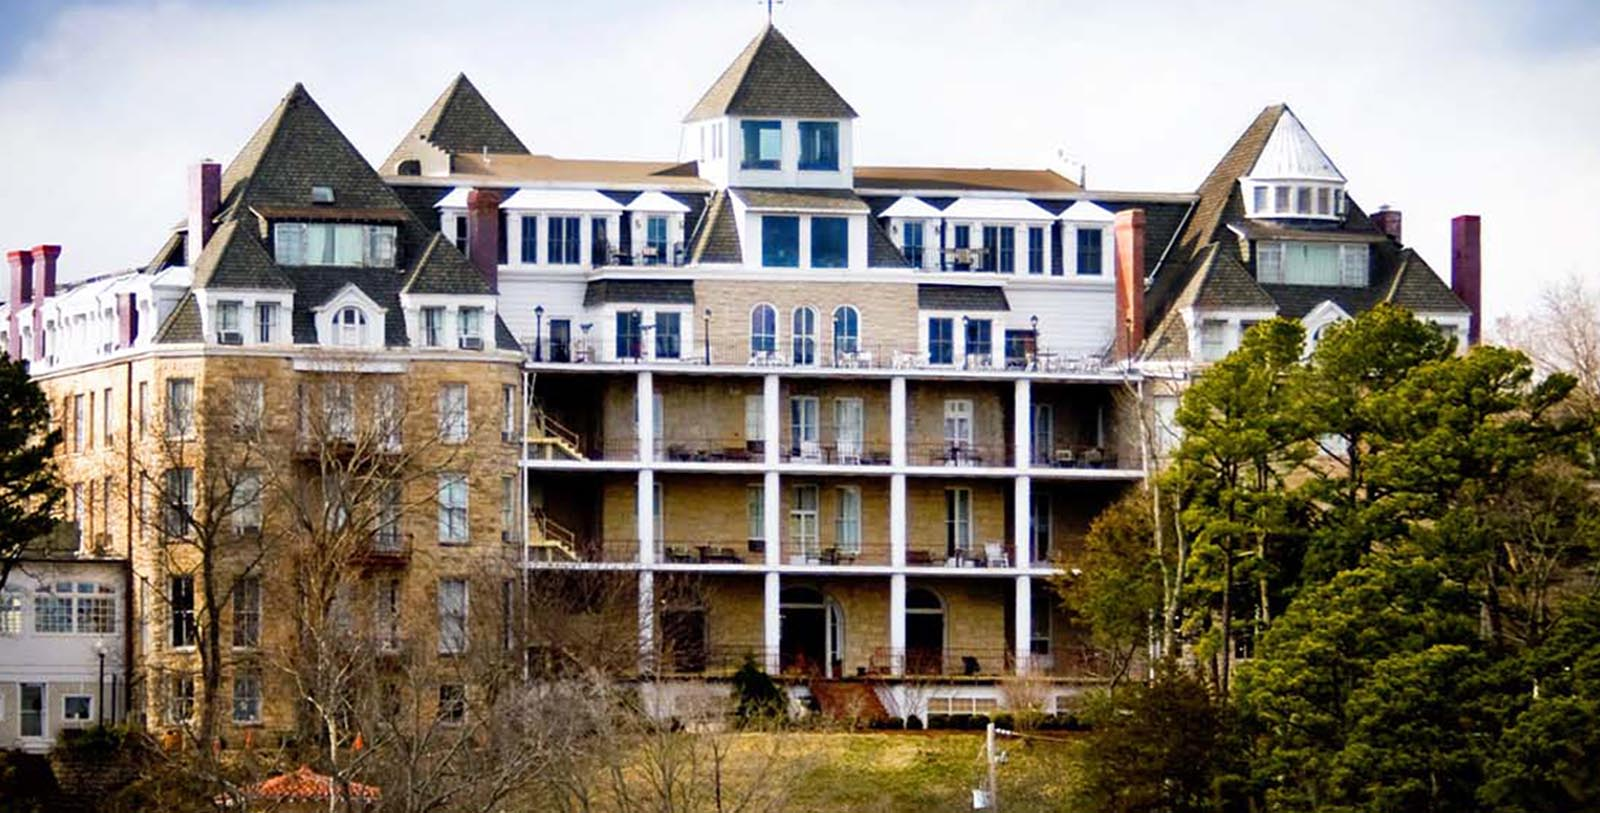 Image of Hotel Exterior 1886 Crescent Hotel & Spa, Member of Historic Hotels of America, in Eureka Springs, Arkansas, Special Offers, Discounted Rates, Families, Romantic Escape, Honeymoons, Anniversaries, Reunions